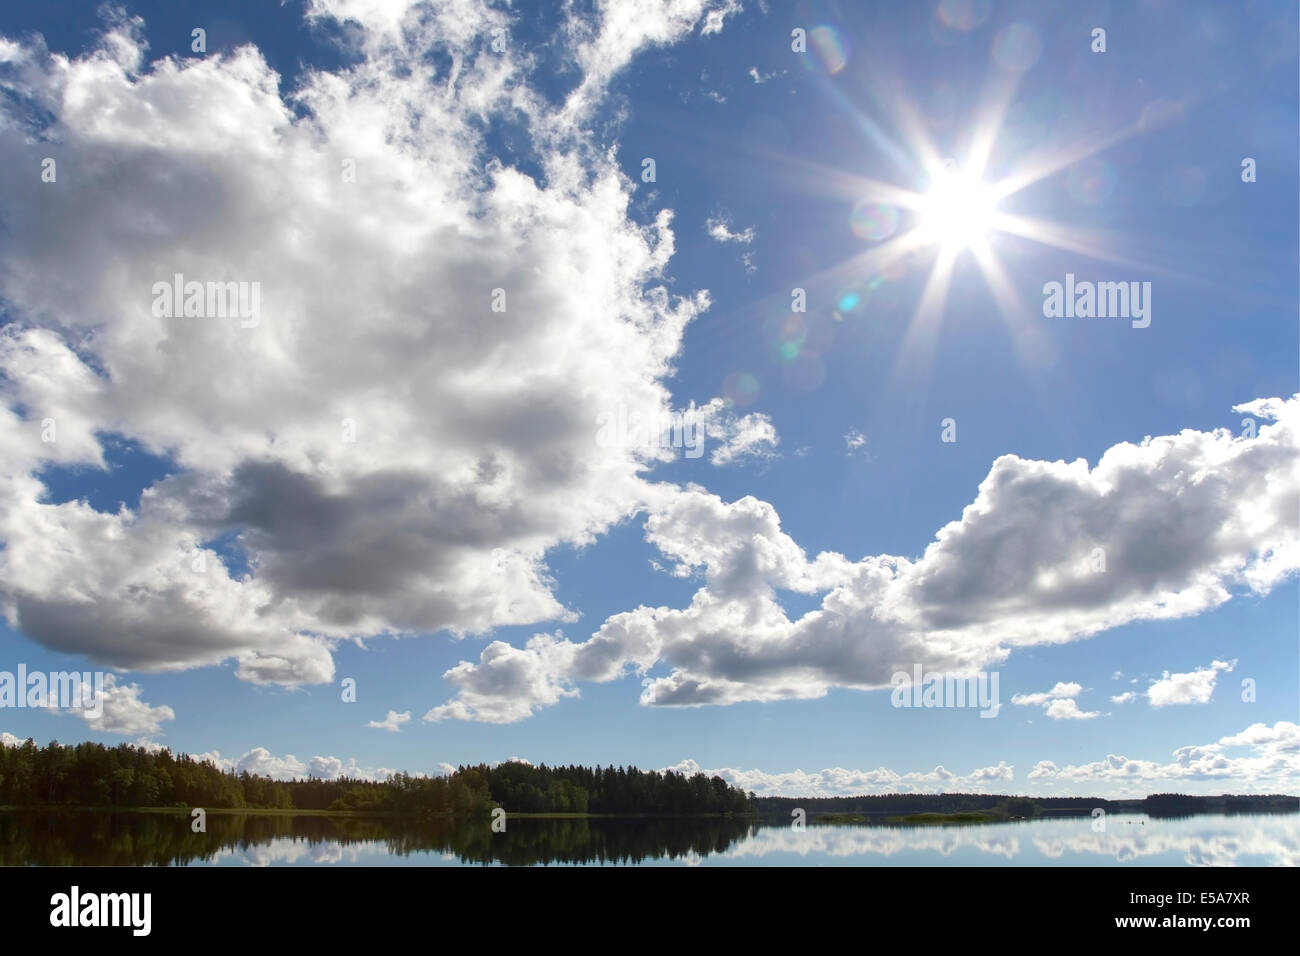 Lake scenery in summer in Finland - Stock Image